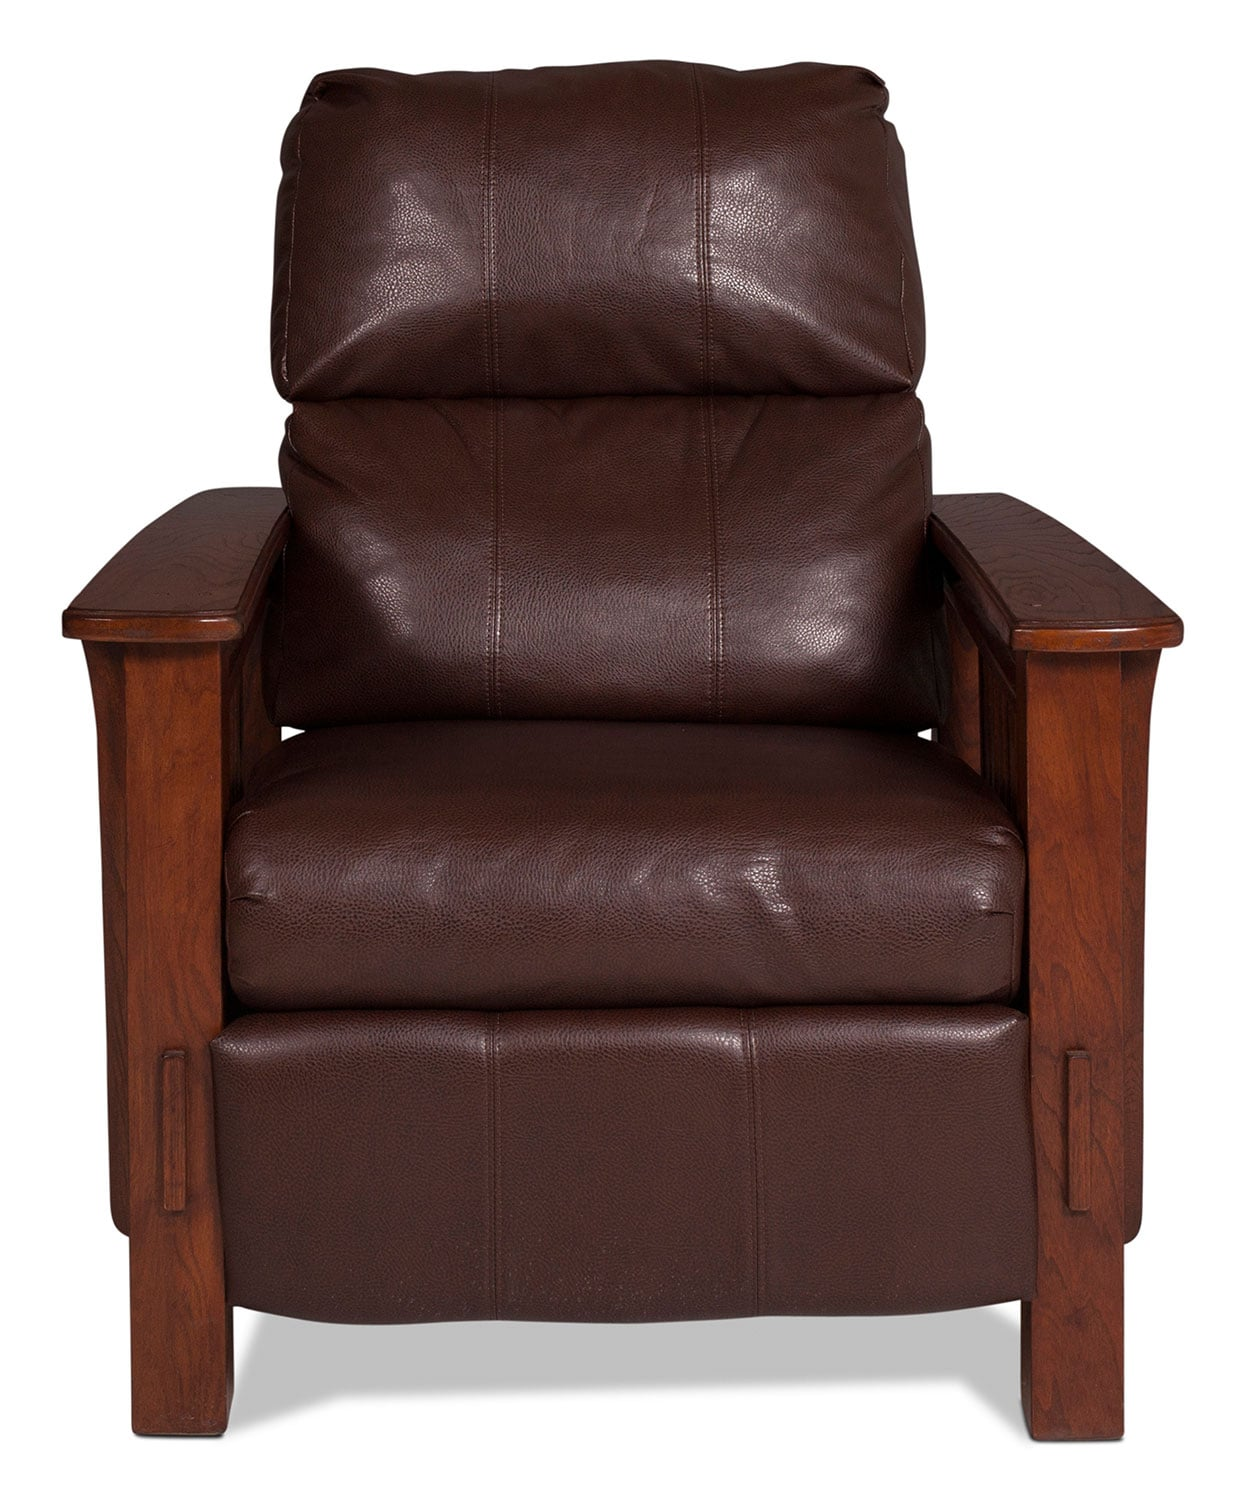 Levin Furniture Leather | Free Home Design Ideas Images